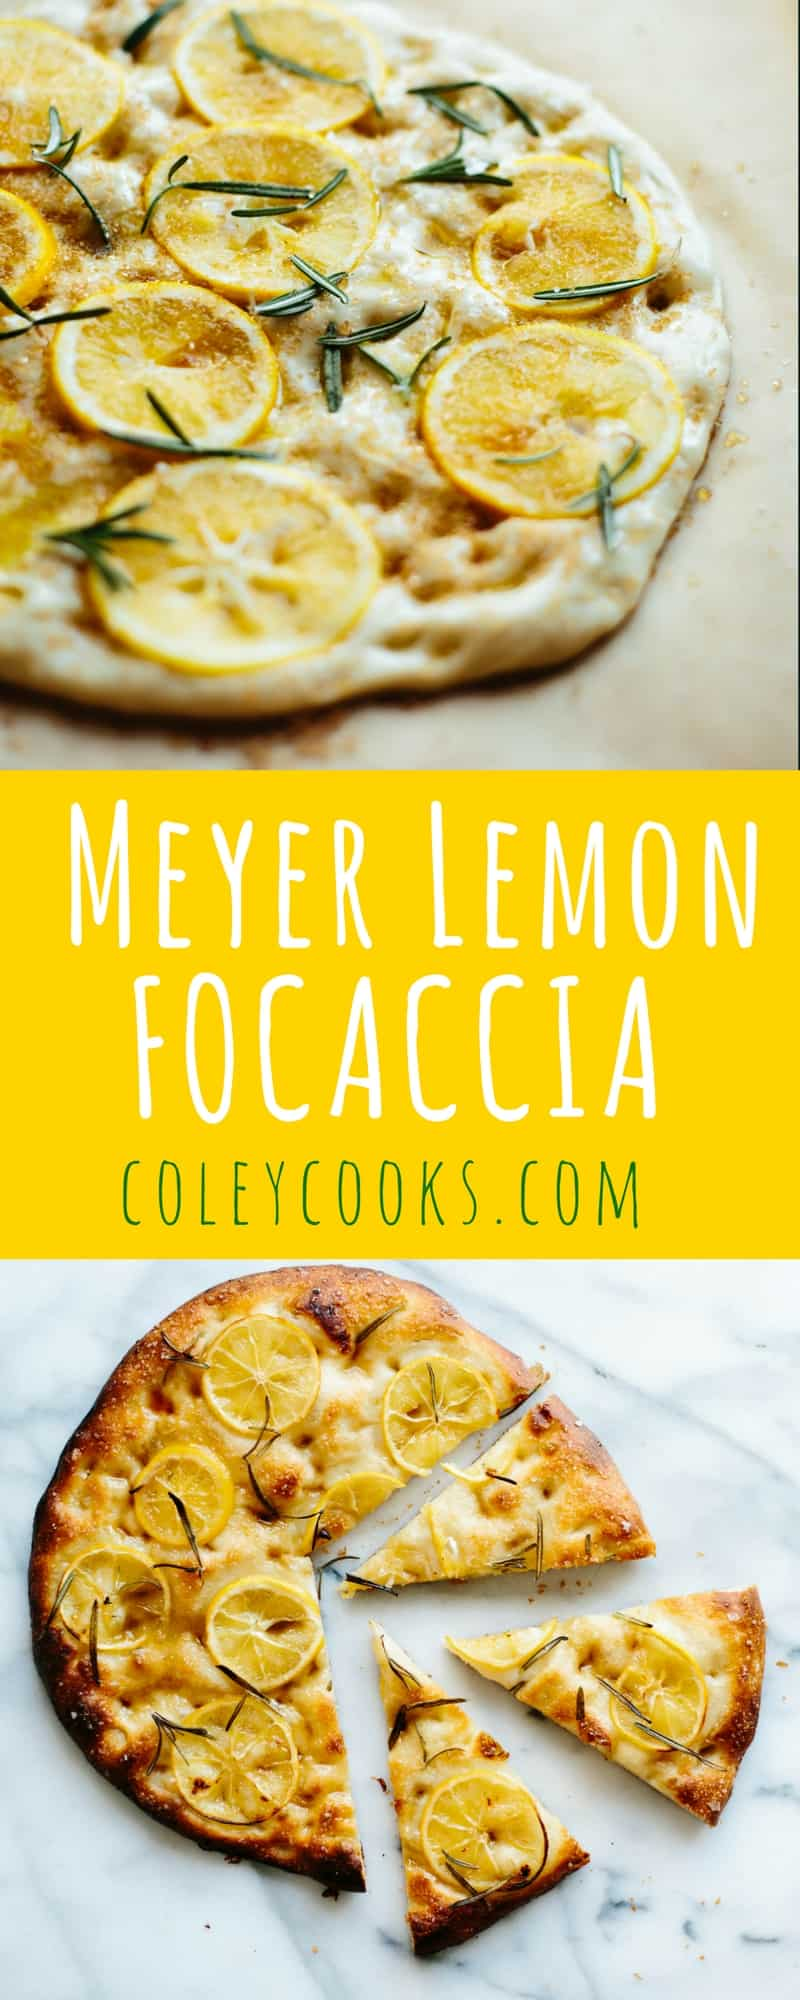 MEYER LEMON FOCACCIA | ColeyCooks.com | Salty, Sweet, Tangy, Pillowy Soft + Totally Addictive!